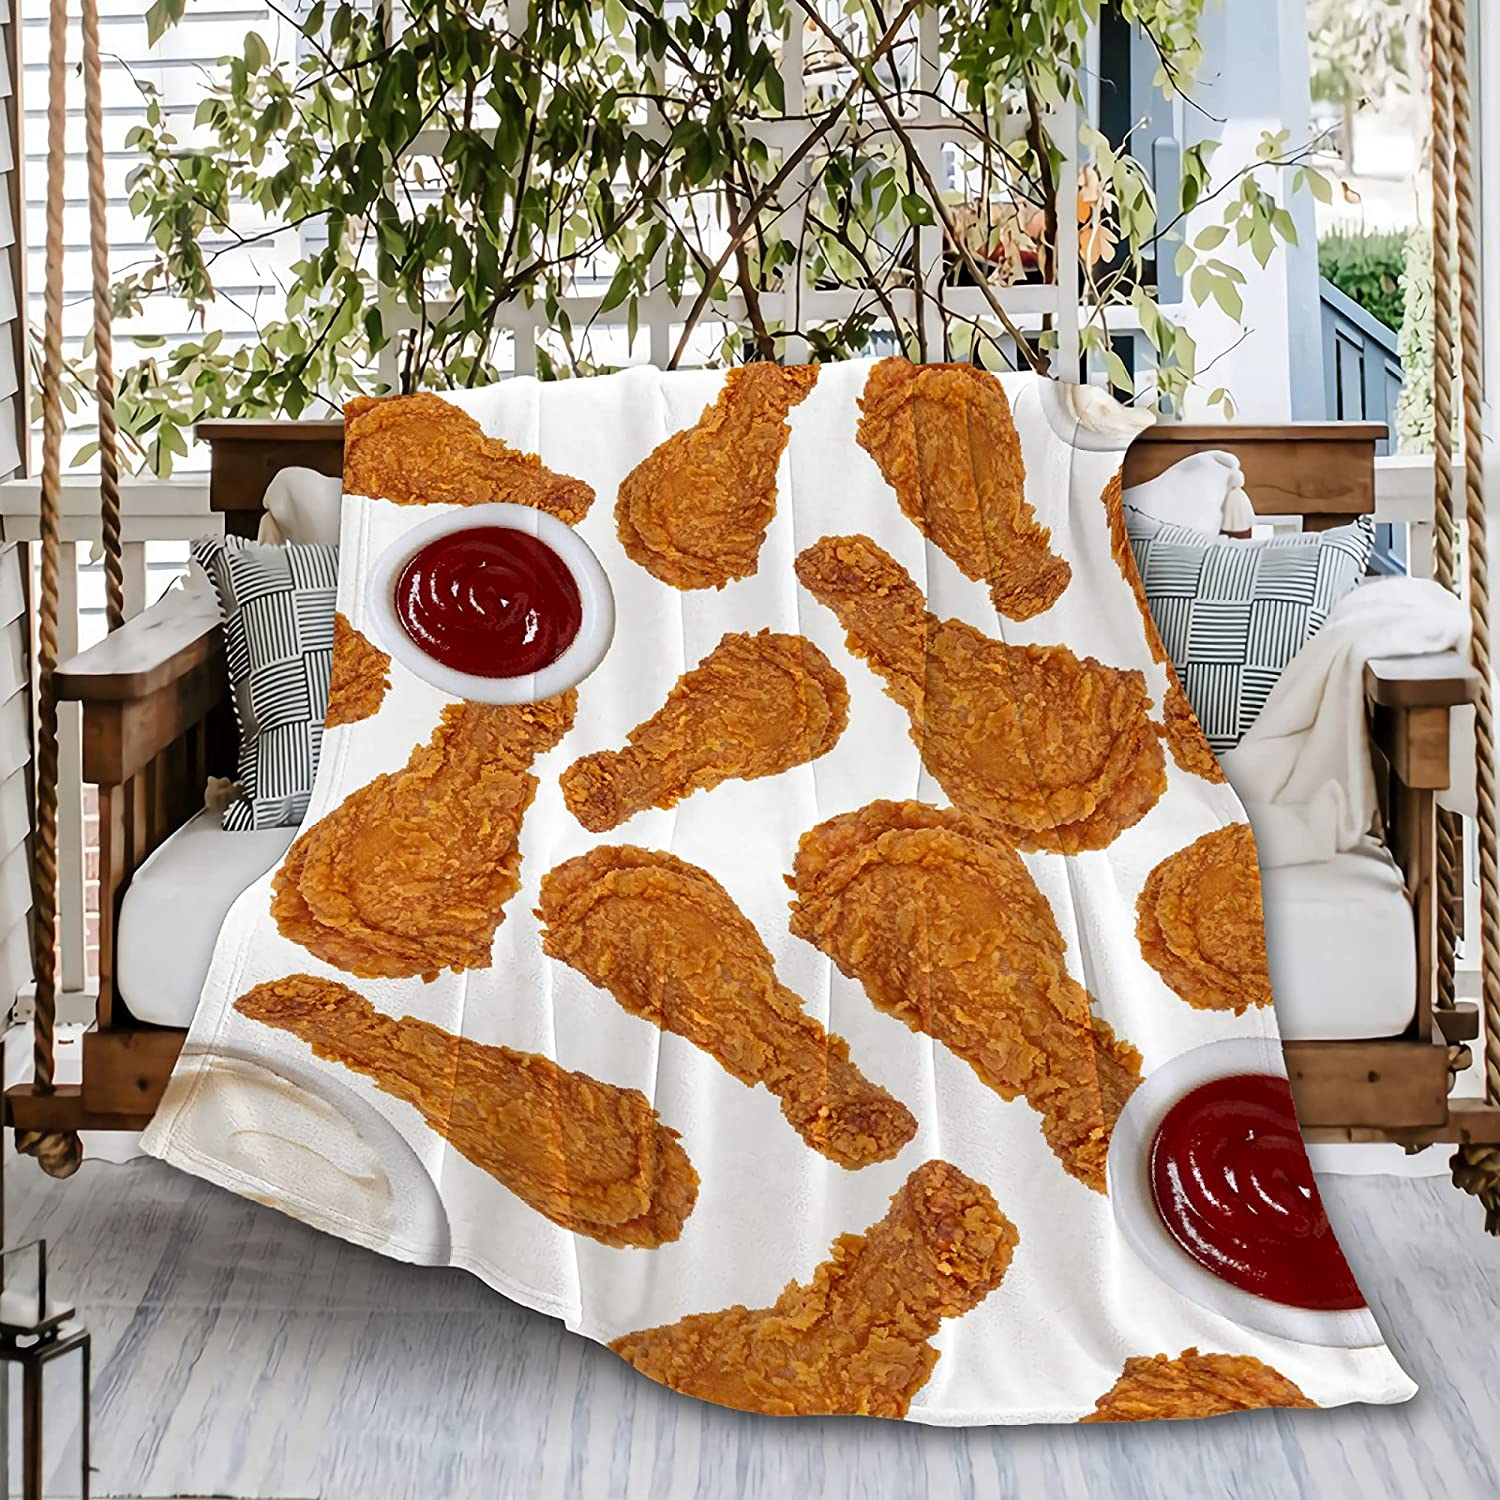 Fried Chicken Le-g Chicken Nuggets Junk Food Ultra Soft Flannel Fleece Throw Blankets, Microfiber Comfort Light Weight Outdoor Moving Cover for Beach Picnic Couch Small 50